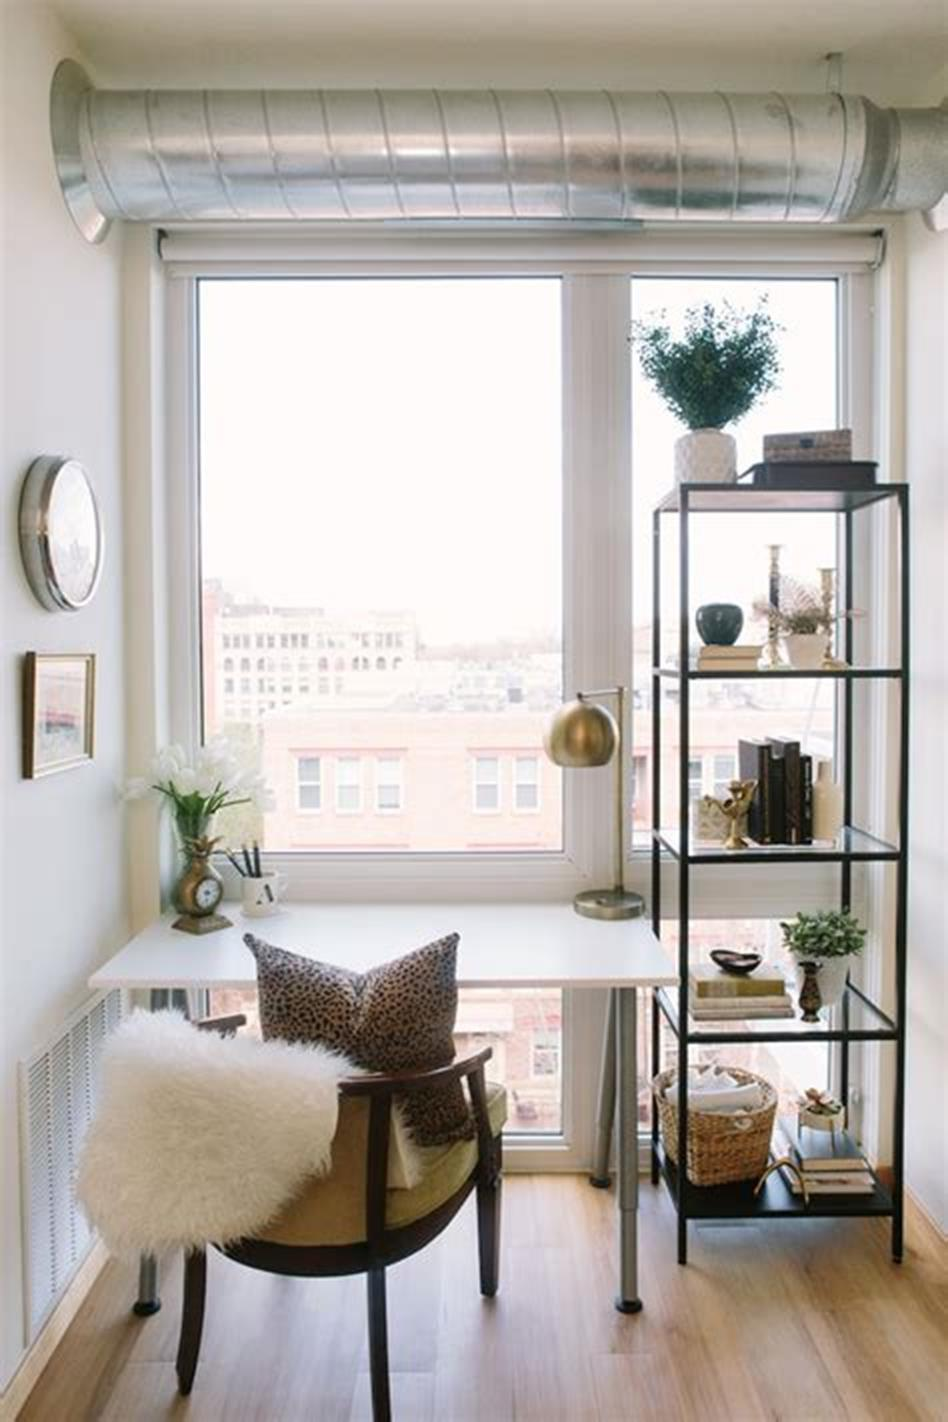 50 Best Small Space Office Decorating Ideas On a Budget 2019 21